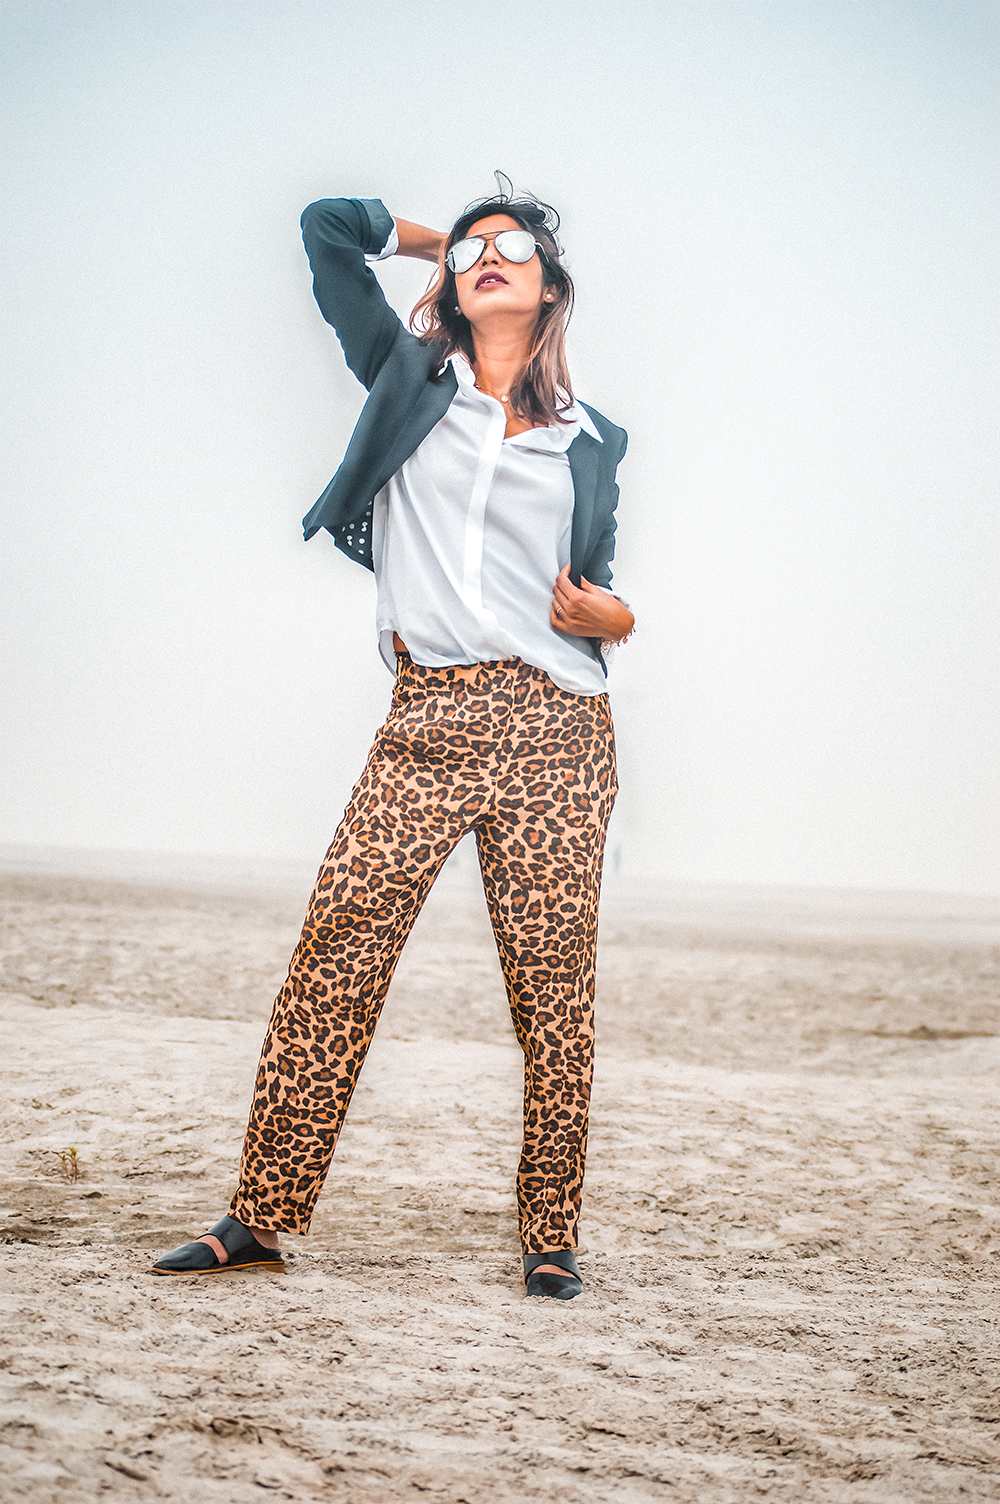 Leopard Print to Work, Leopard Print, Work wear, Office wear, Formal Fashion, How to style, Style Tips-1